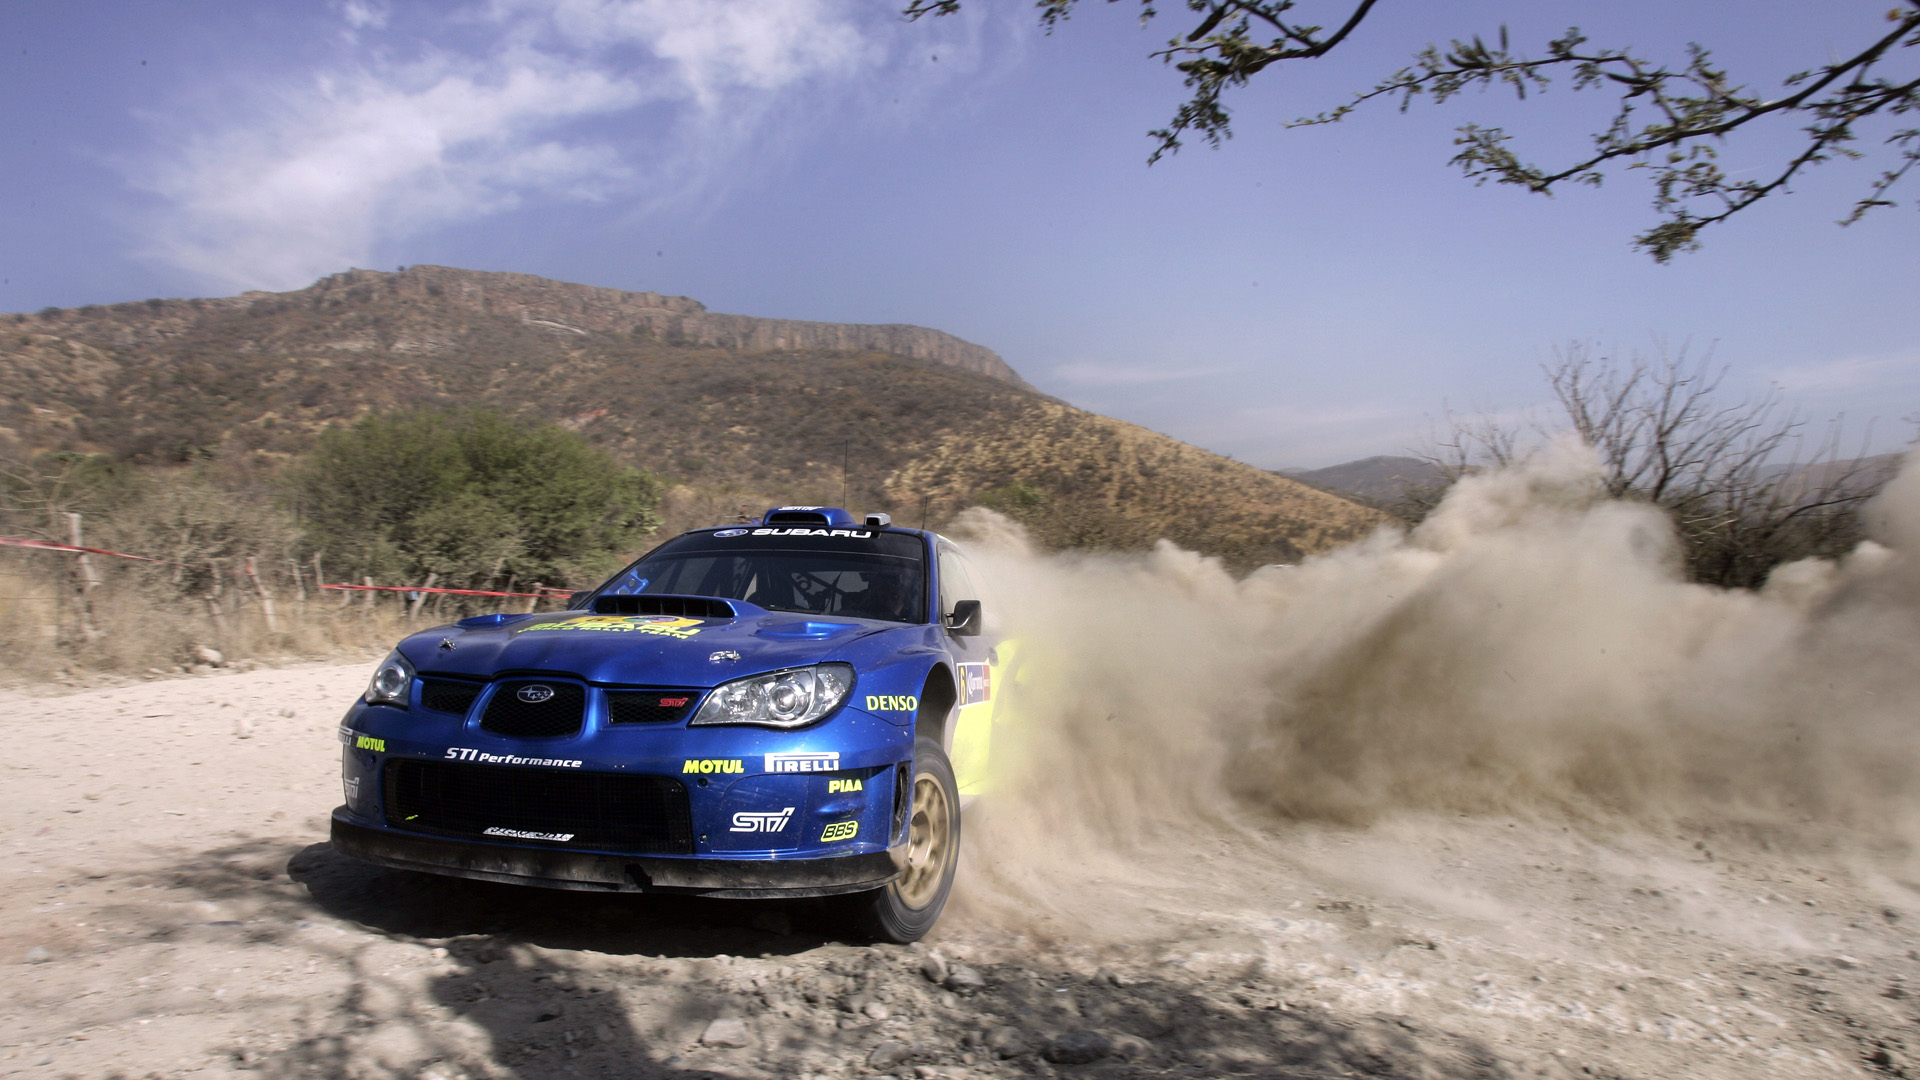 Cars subaru desert myspace 495484 wallpaper wallpaper rally cars subaru desert myspace 495484 wallpaper wallpaper voltagebd Images